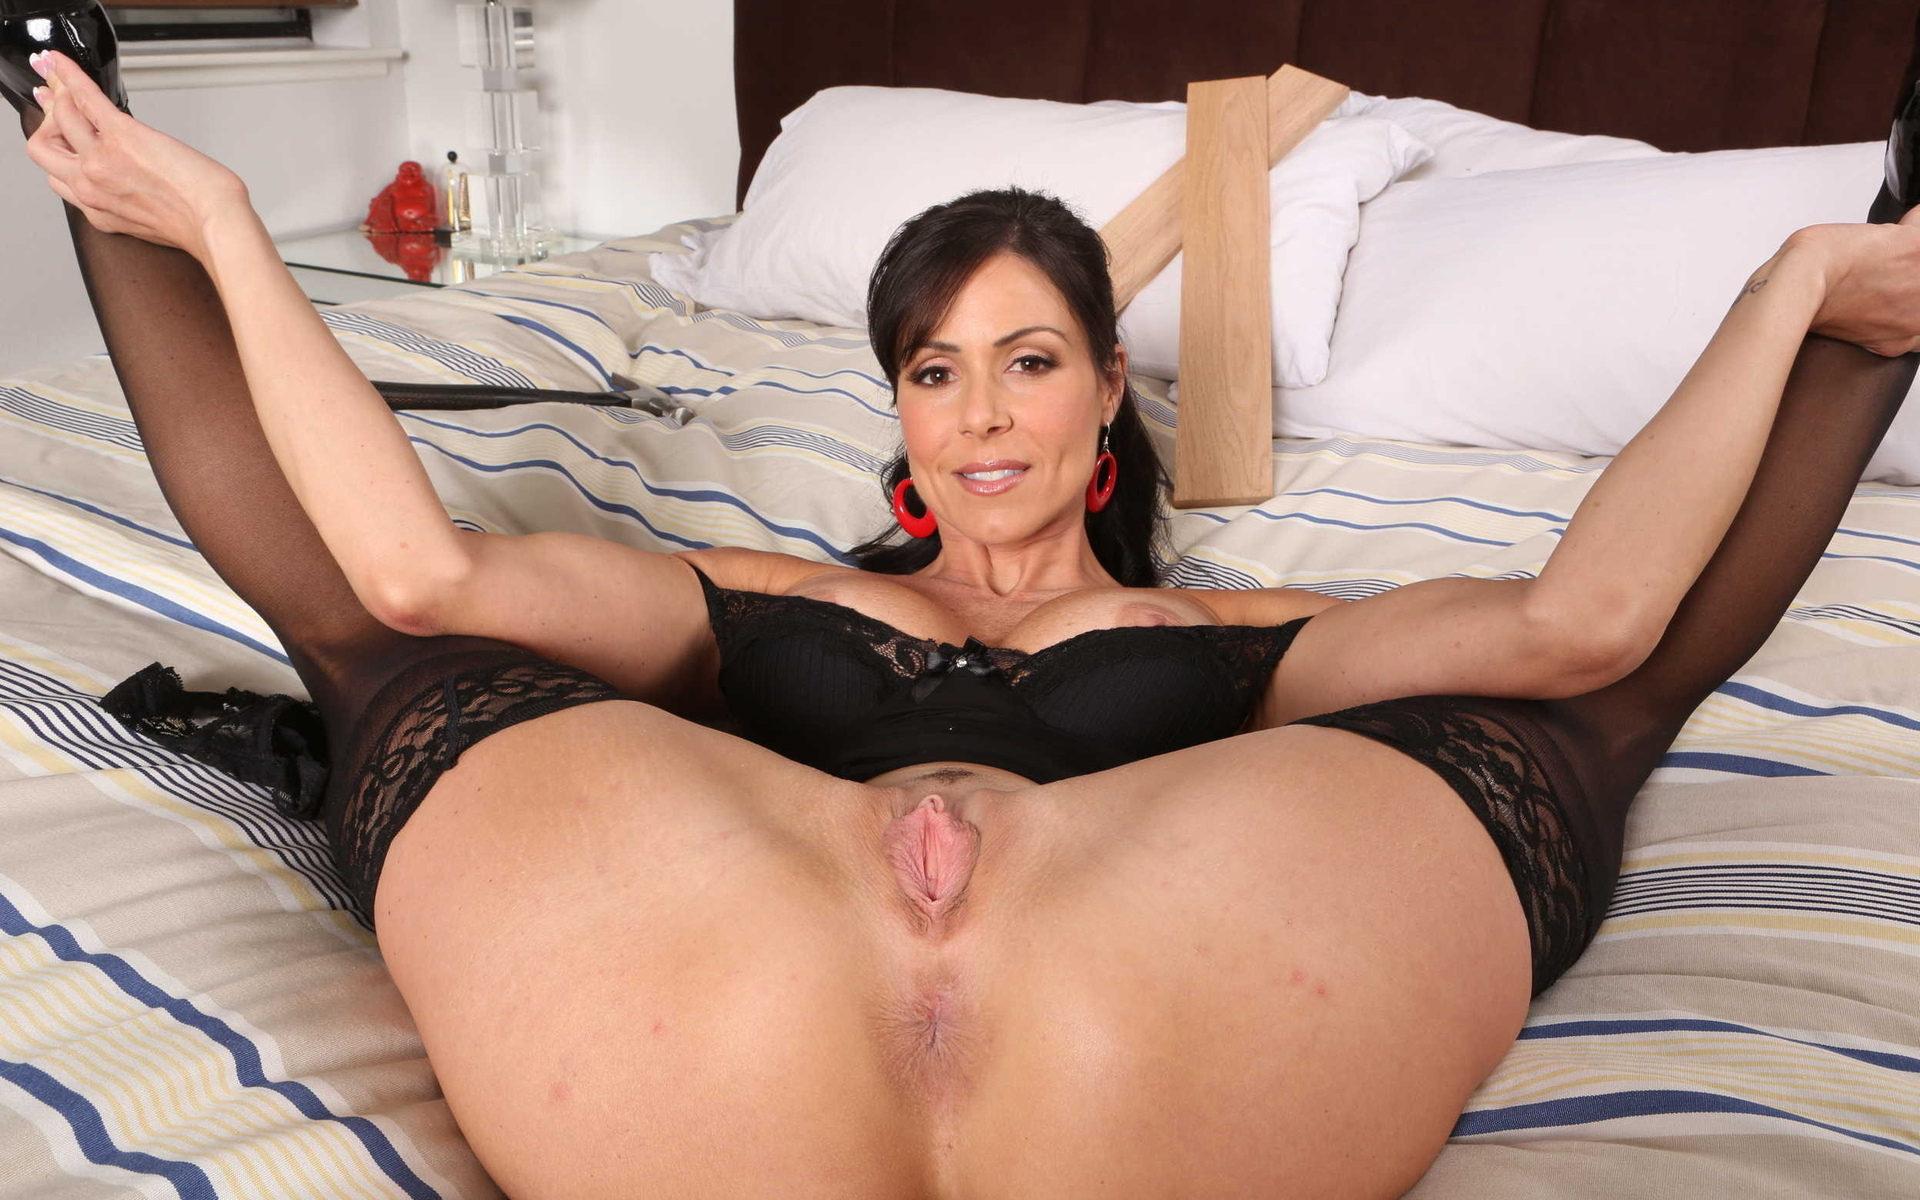 Sexy Big Titted Brunette Milf Shows Ass In Lingerie On Bed Most Sexy Porn